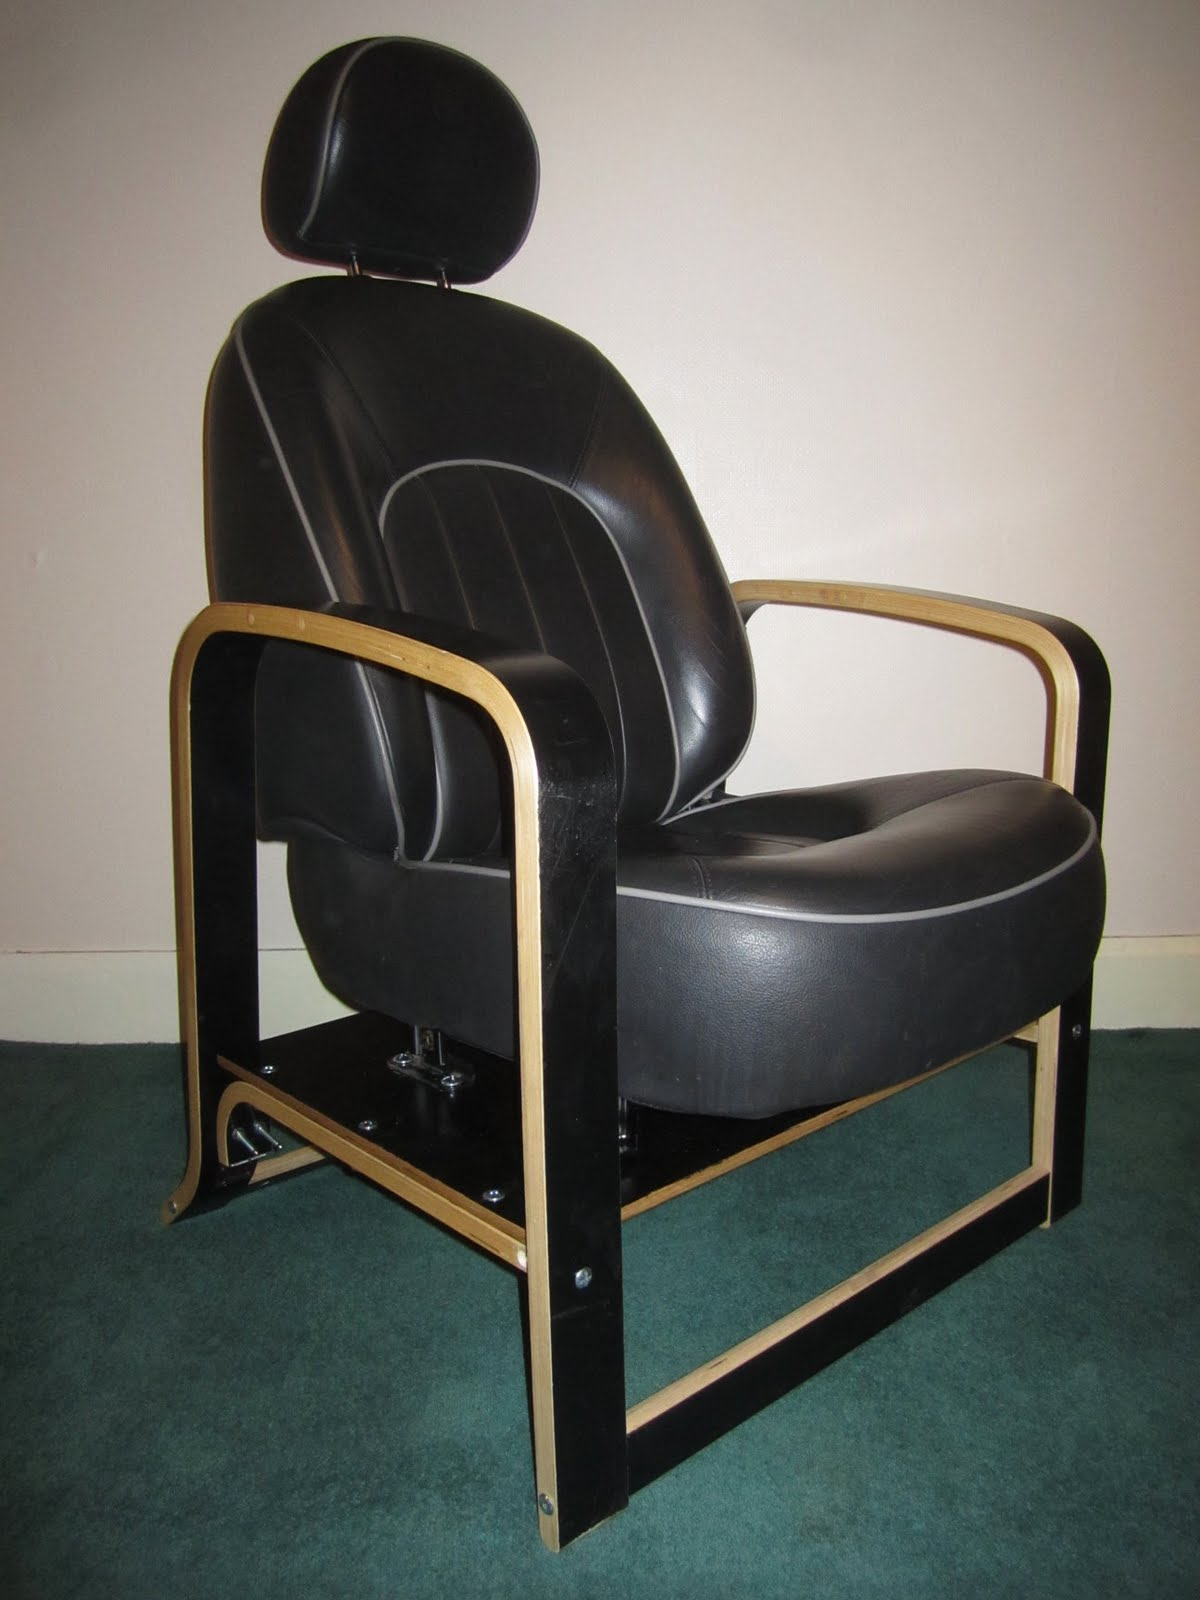 Ikea Schreibtisch Weiß Hochglanz ~   leather Rover car seat and an Ikea Poang chair frame for the legs and